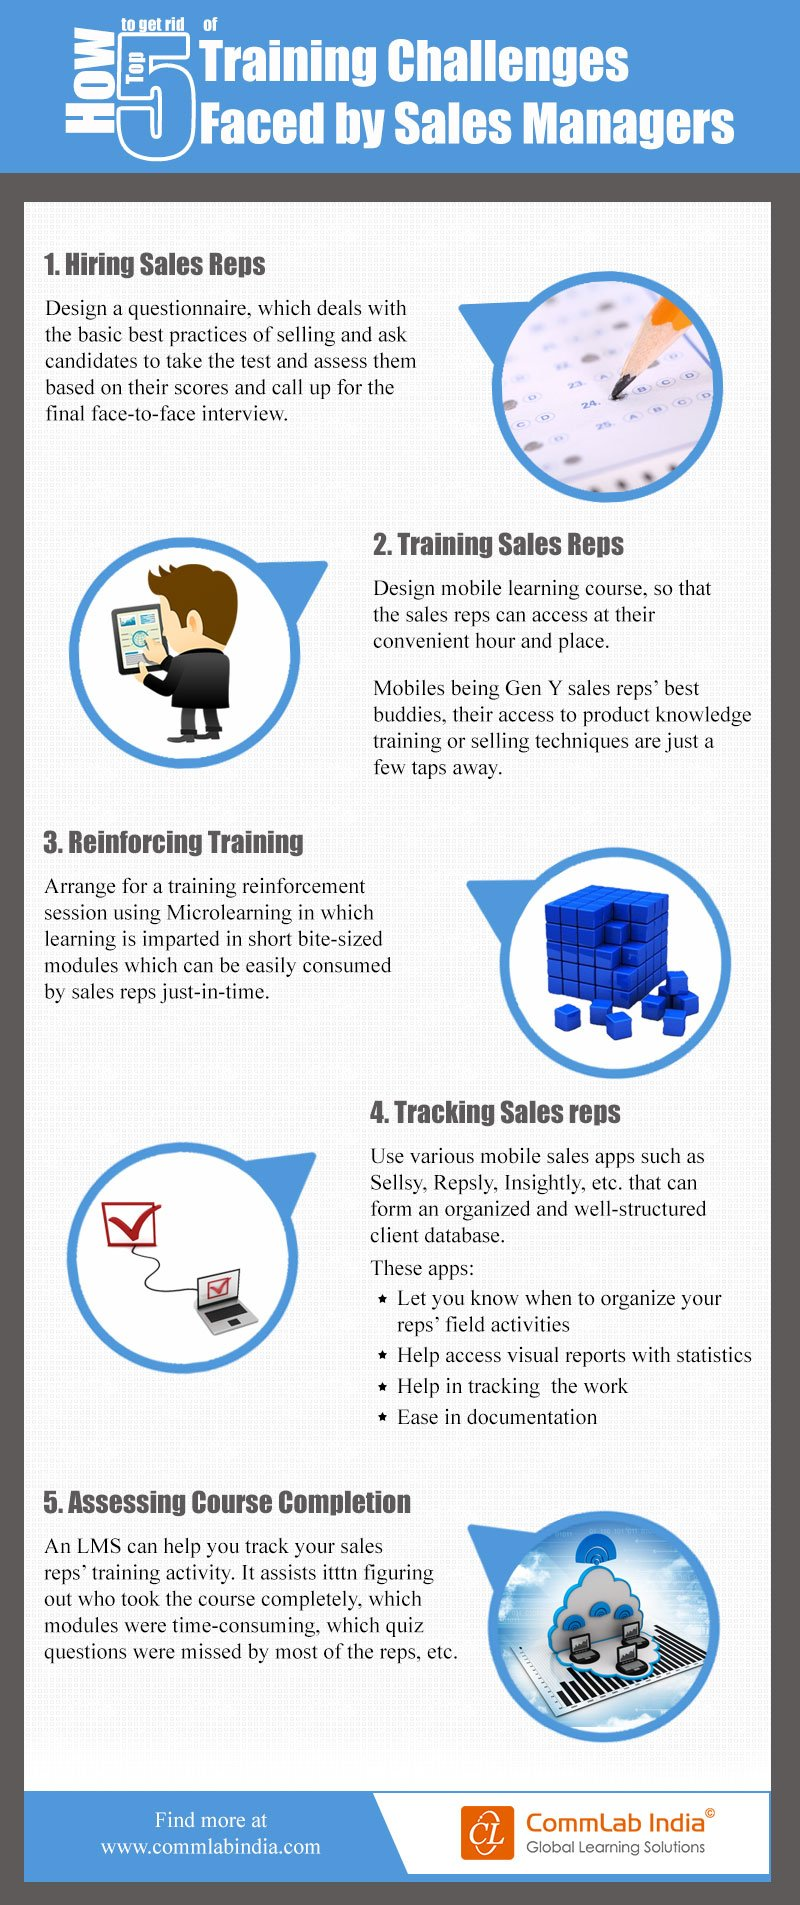 How to Get Rid of Training Challenges Faced by Sales Managers [Infographic]